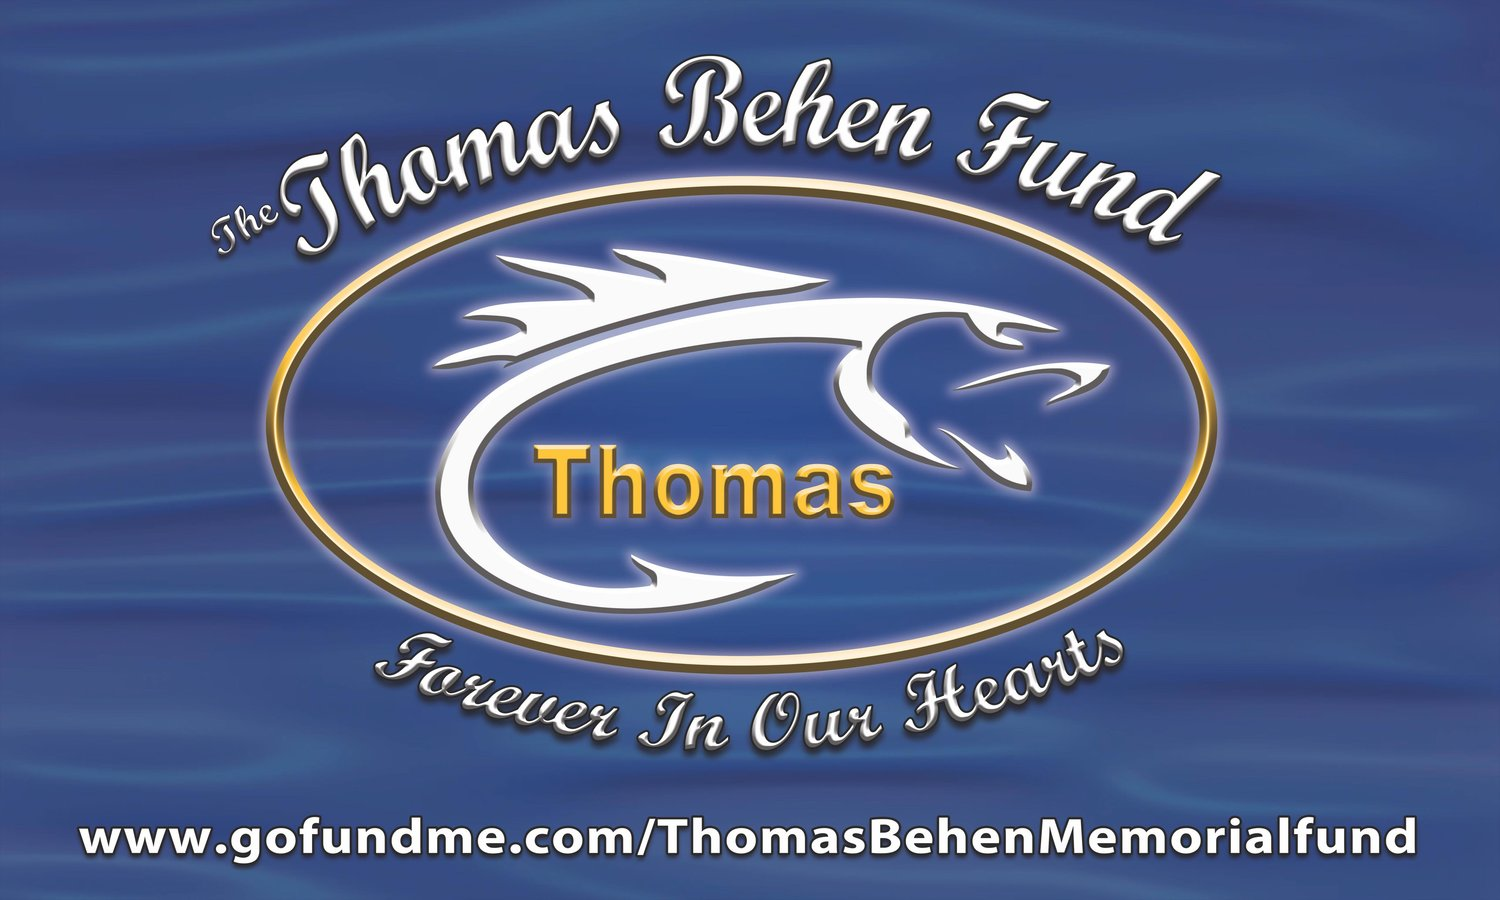 Thomas Behen Fund